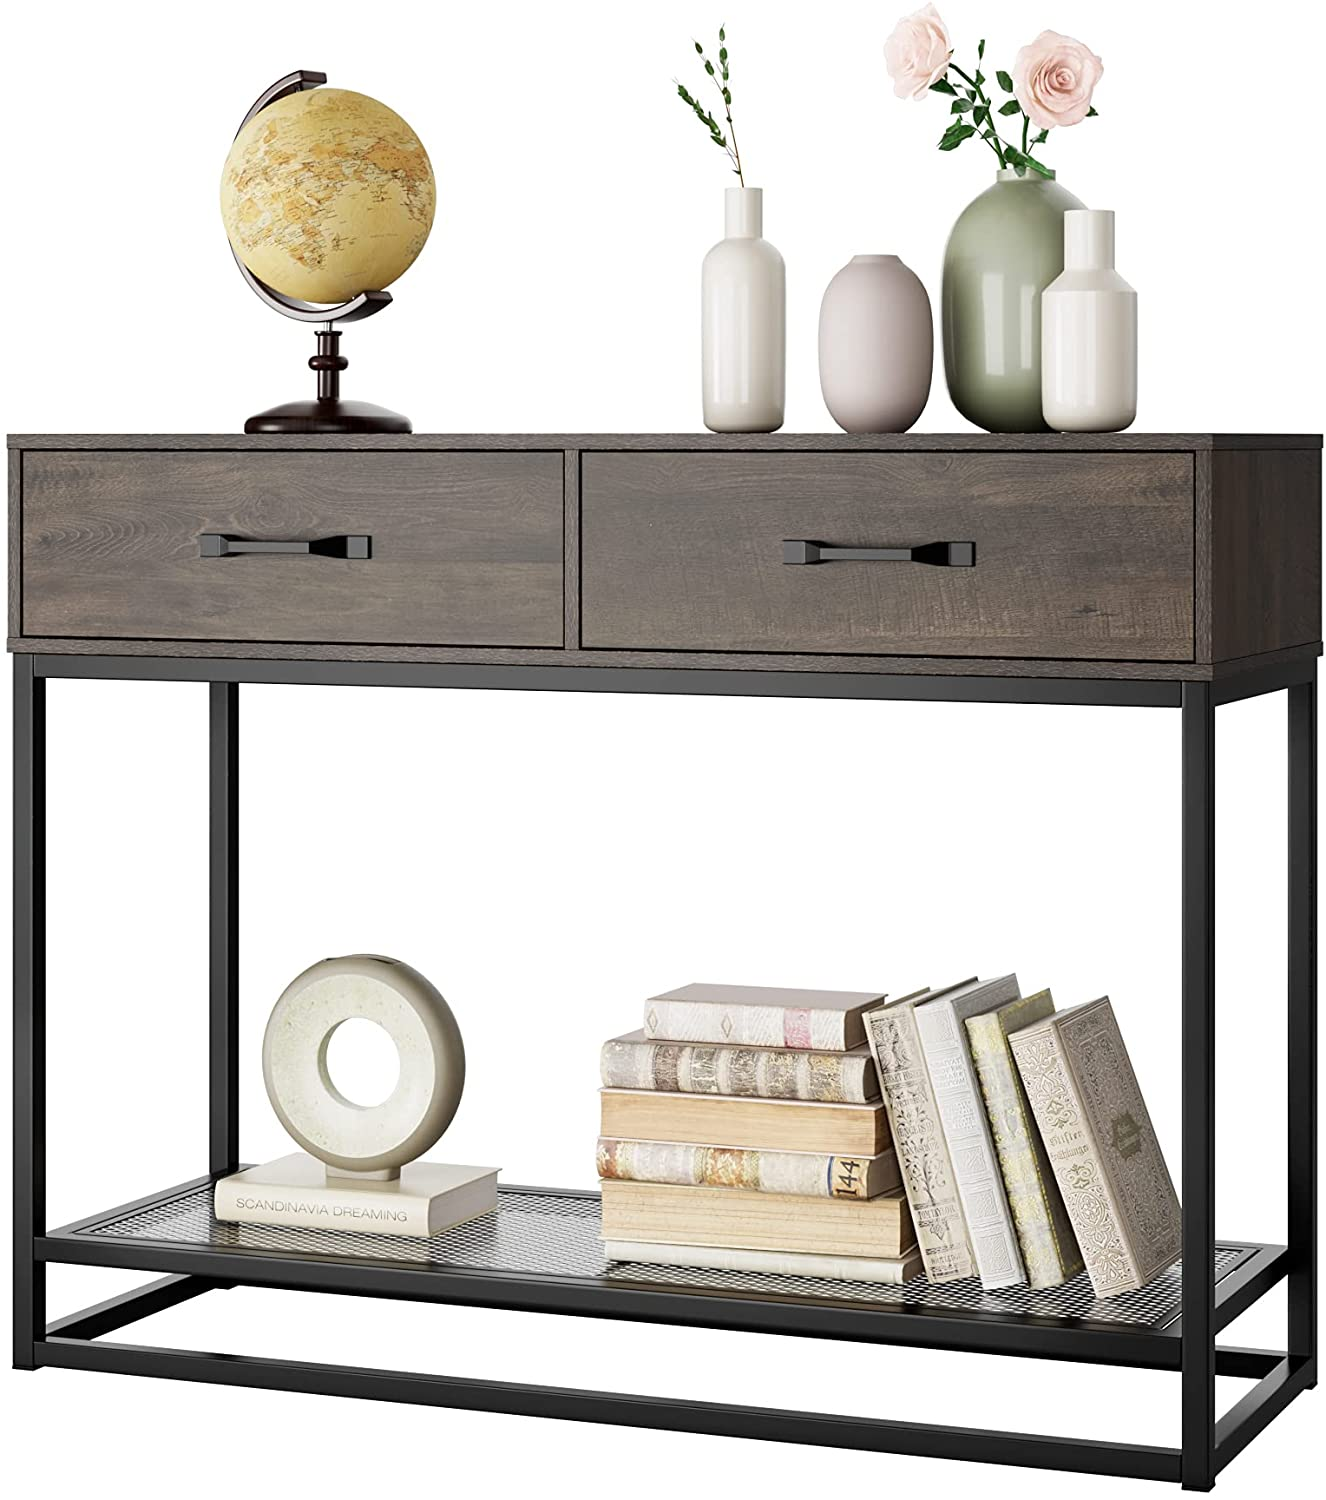 Console Table with Drawers and Storage Shelf, Narrow Long Sofa Entryway Table for Living Room, Entryway, Hallway, Foyer, Dark Brown